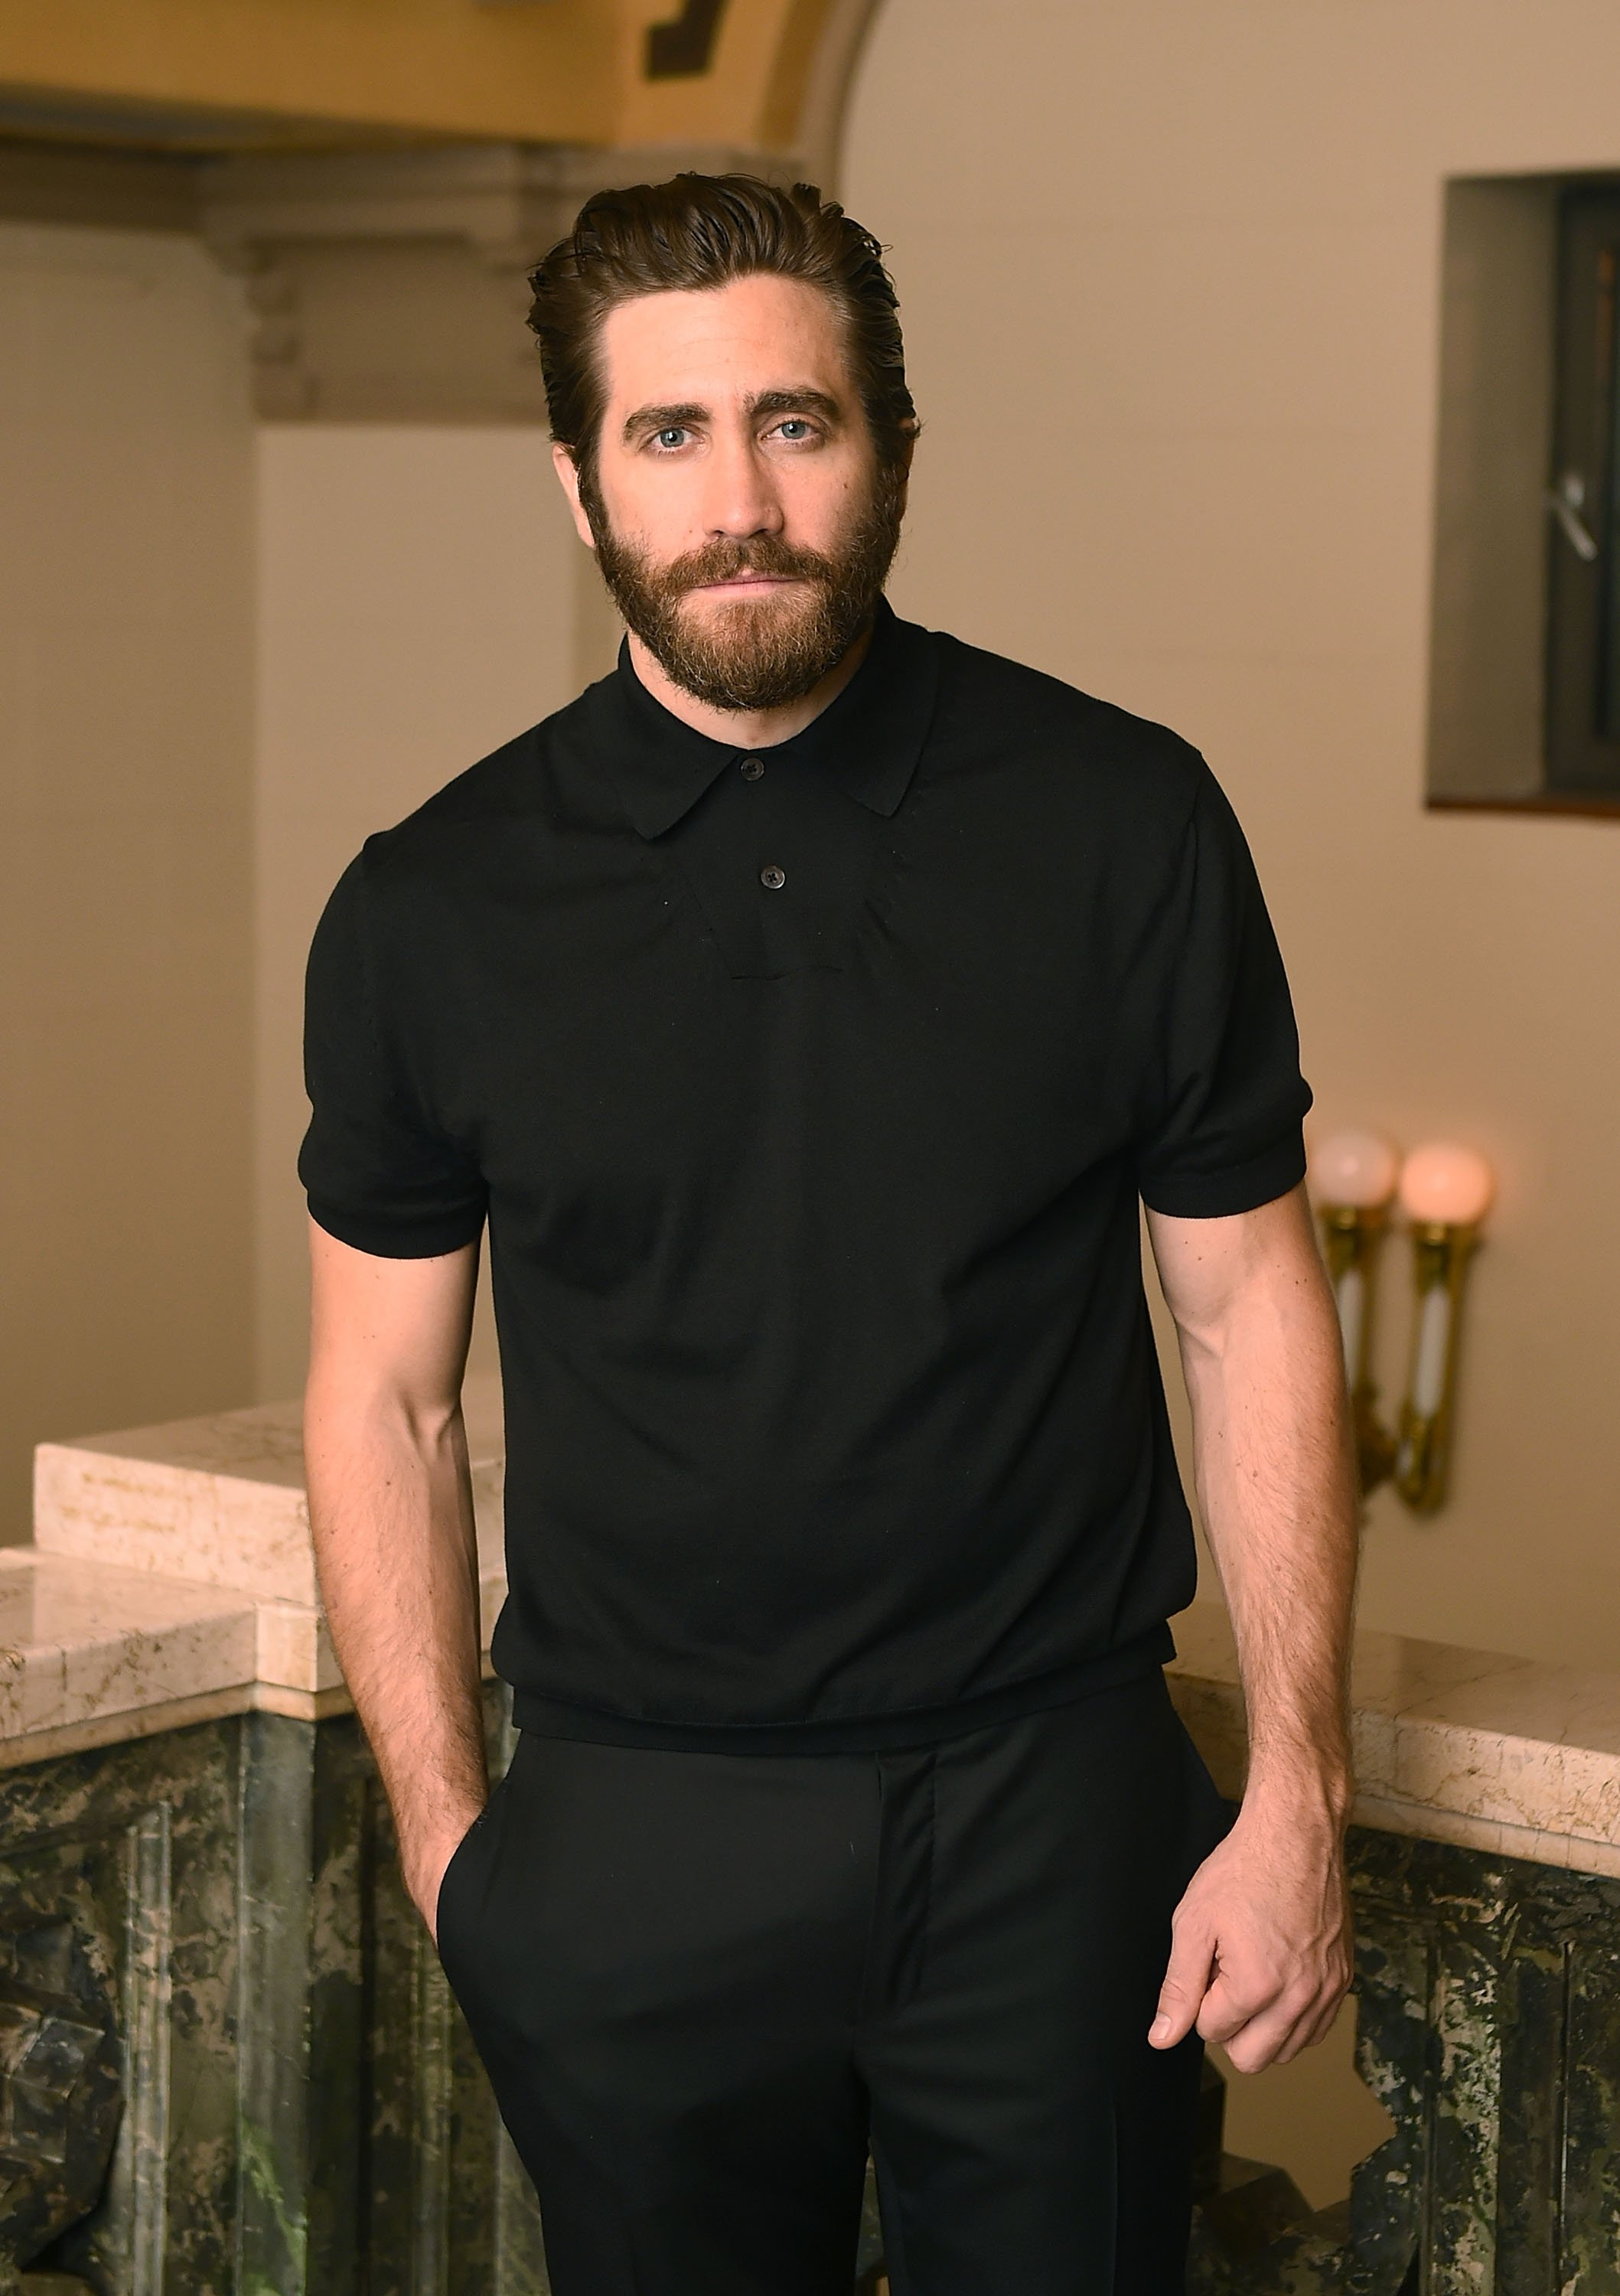 Jake Gyllenhaal at New York City on July 1, 2015. | Photo: Getty Images